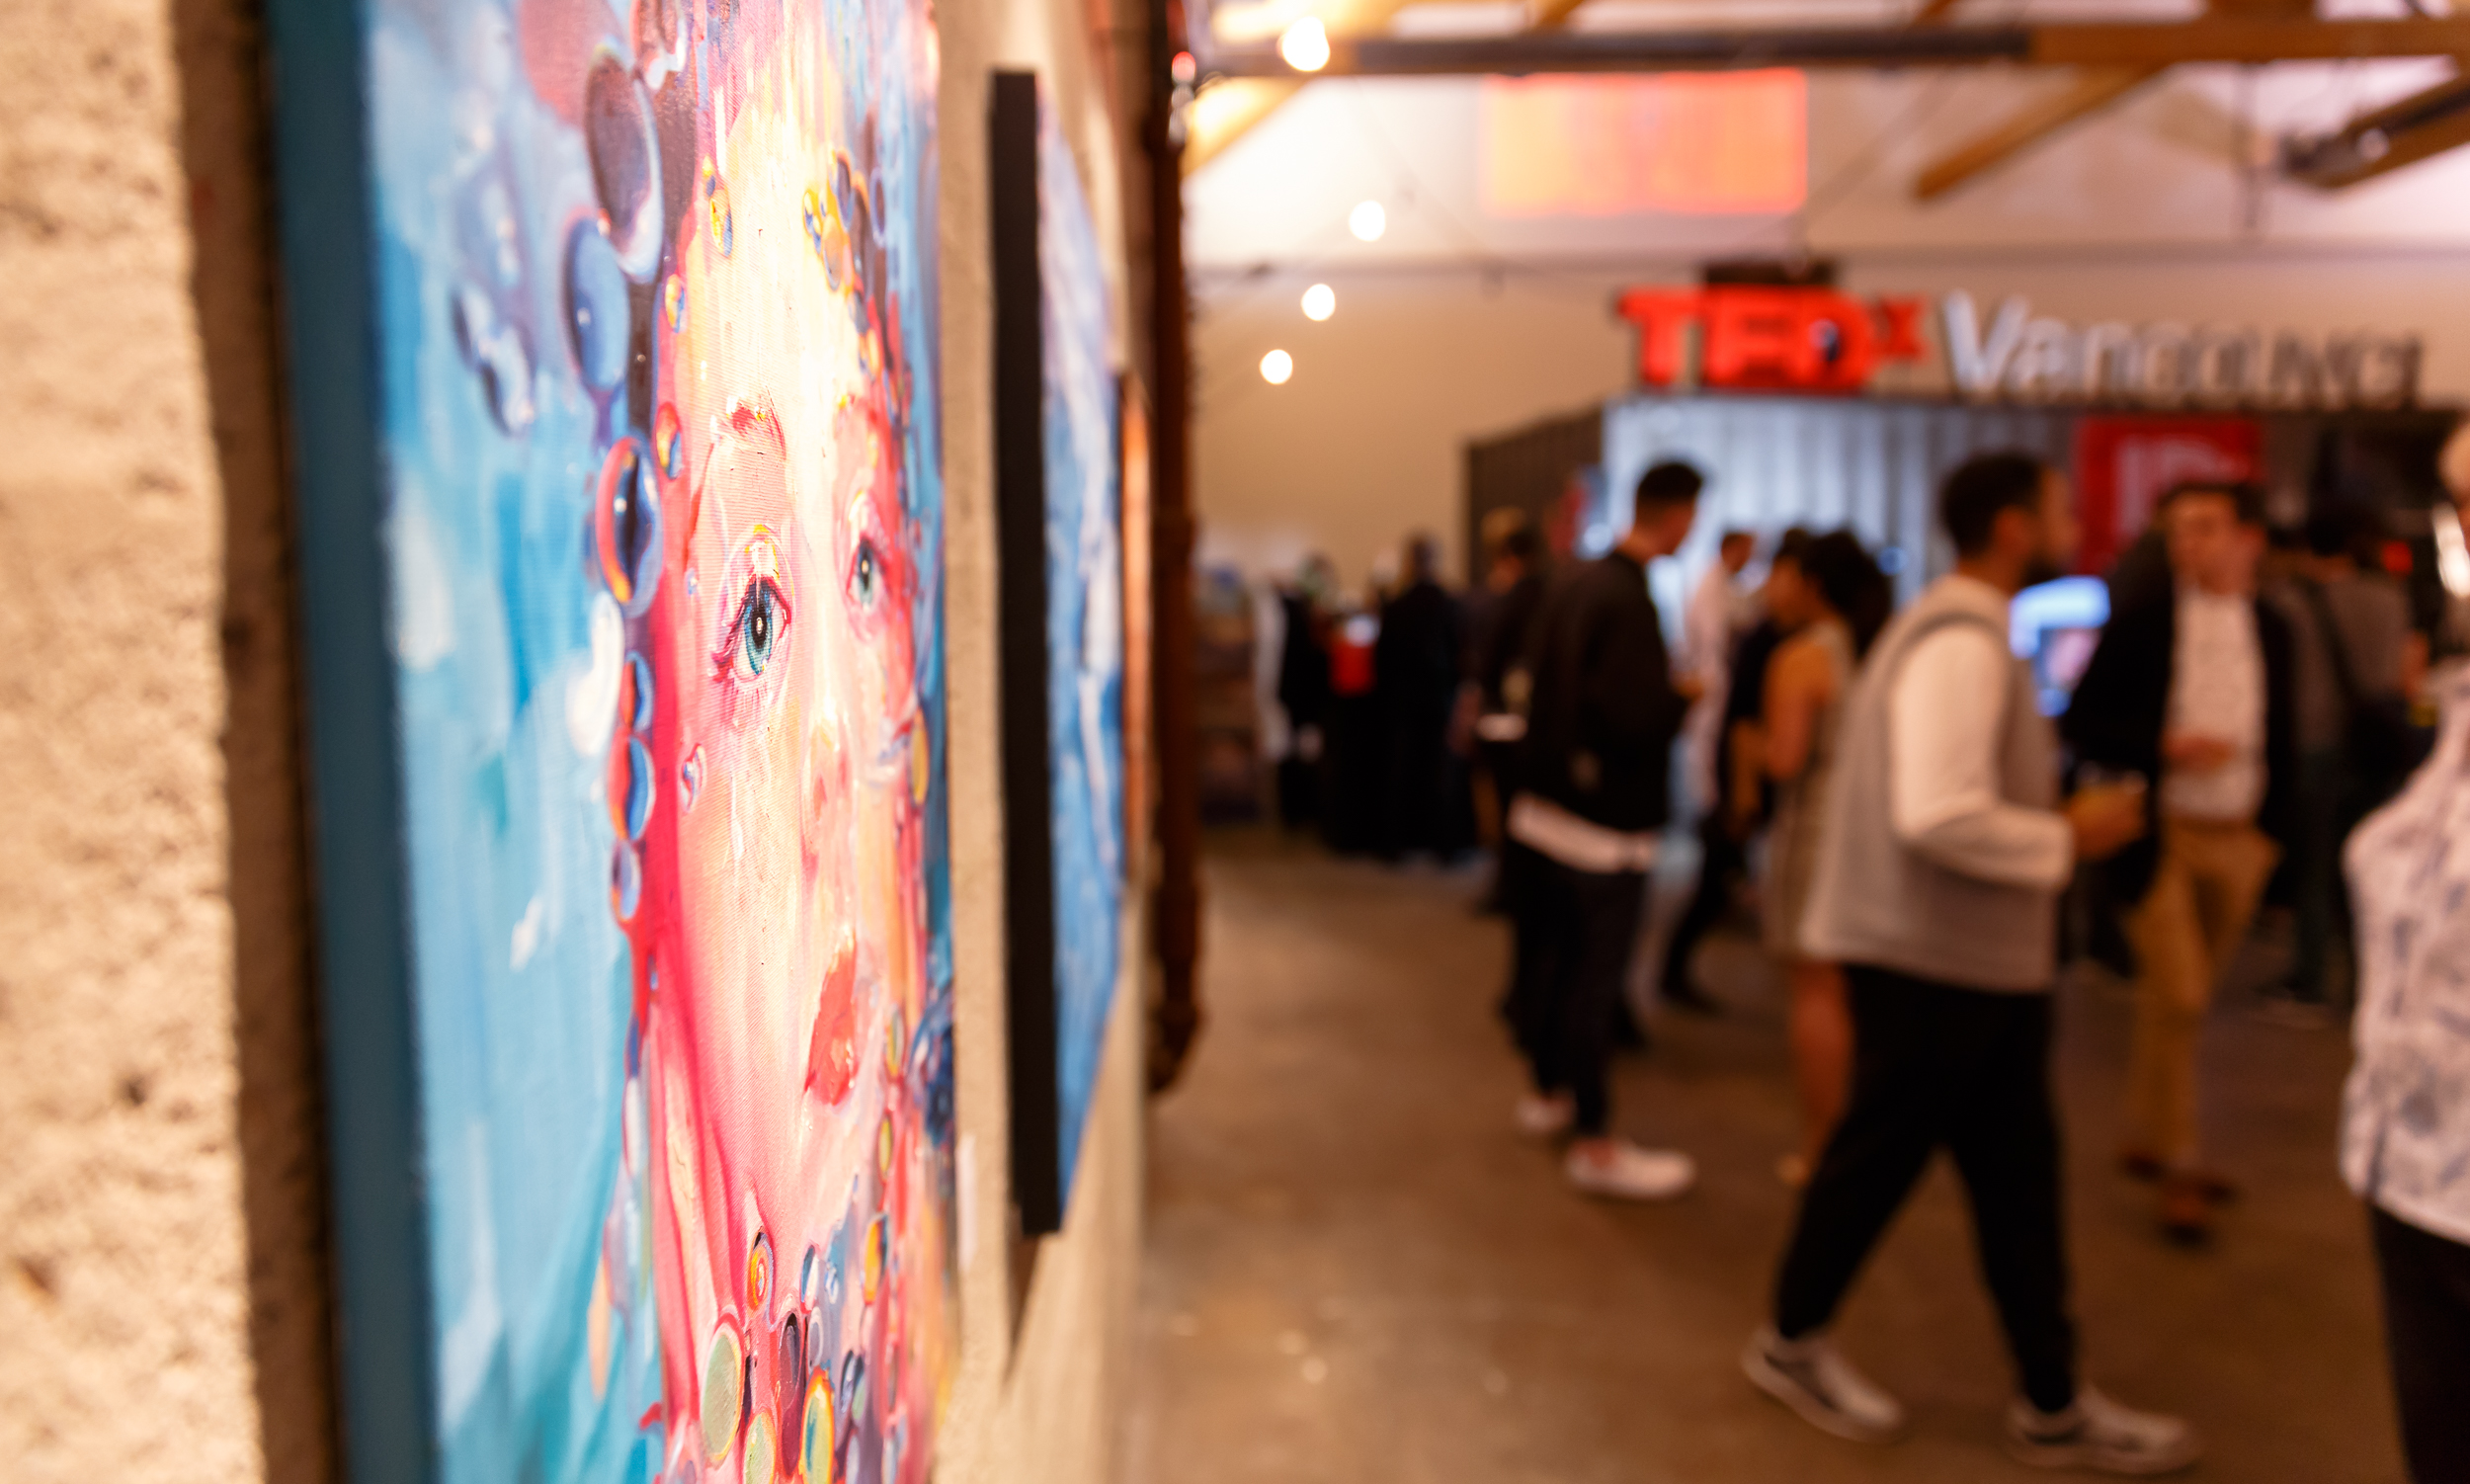 TED-Art-Vancouver-image8.jpg